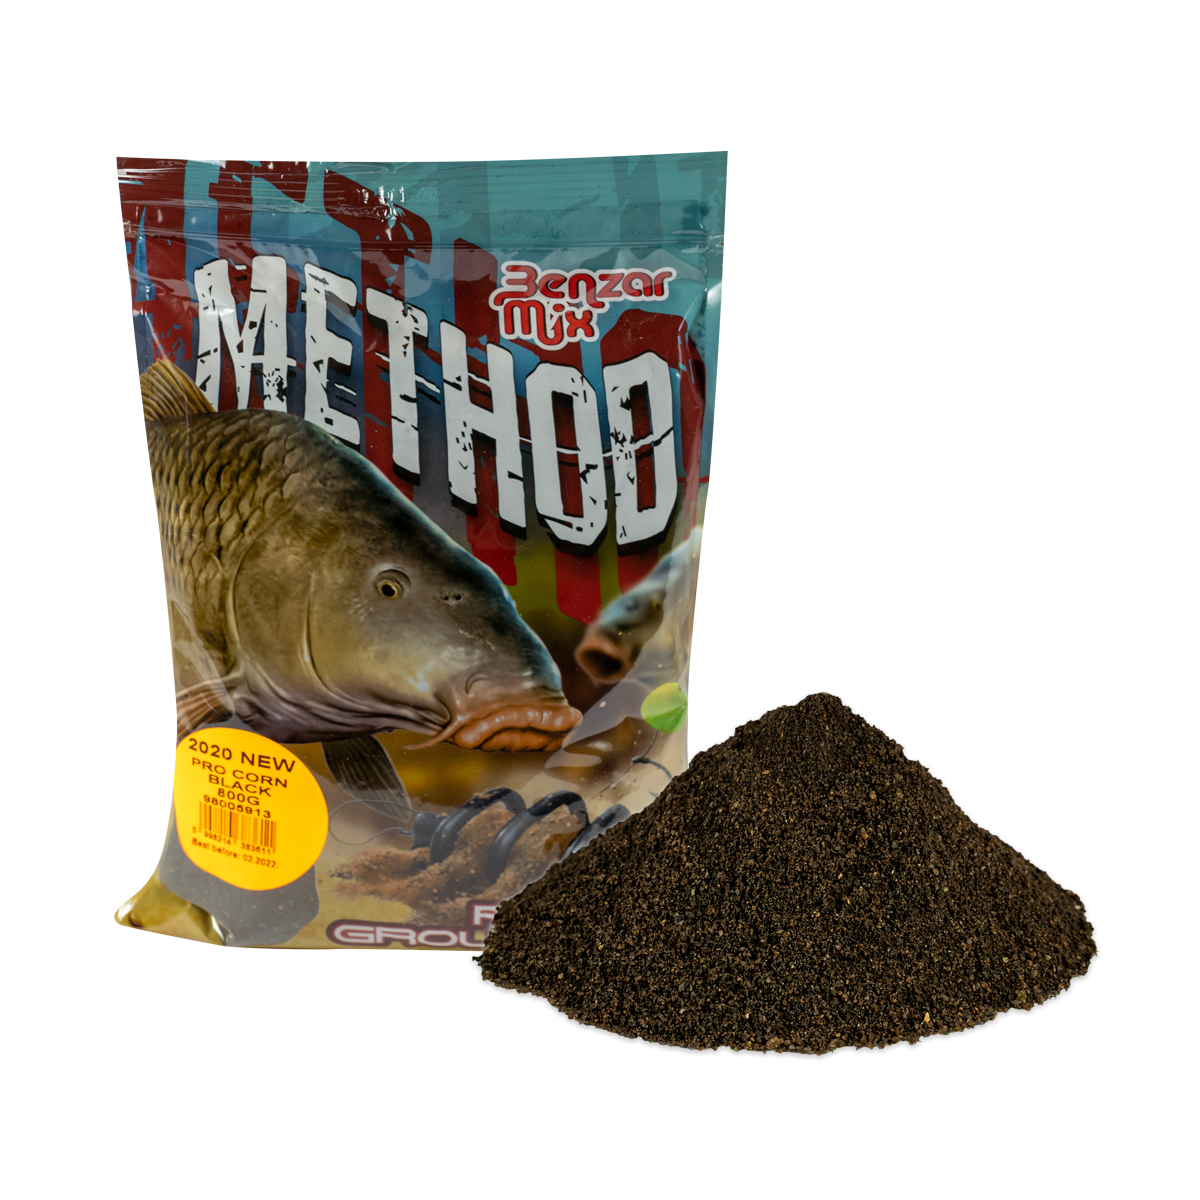 BENZAR MIX SERIA METHOD PRO CORN BLACK 800GR